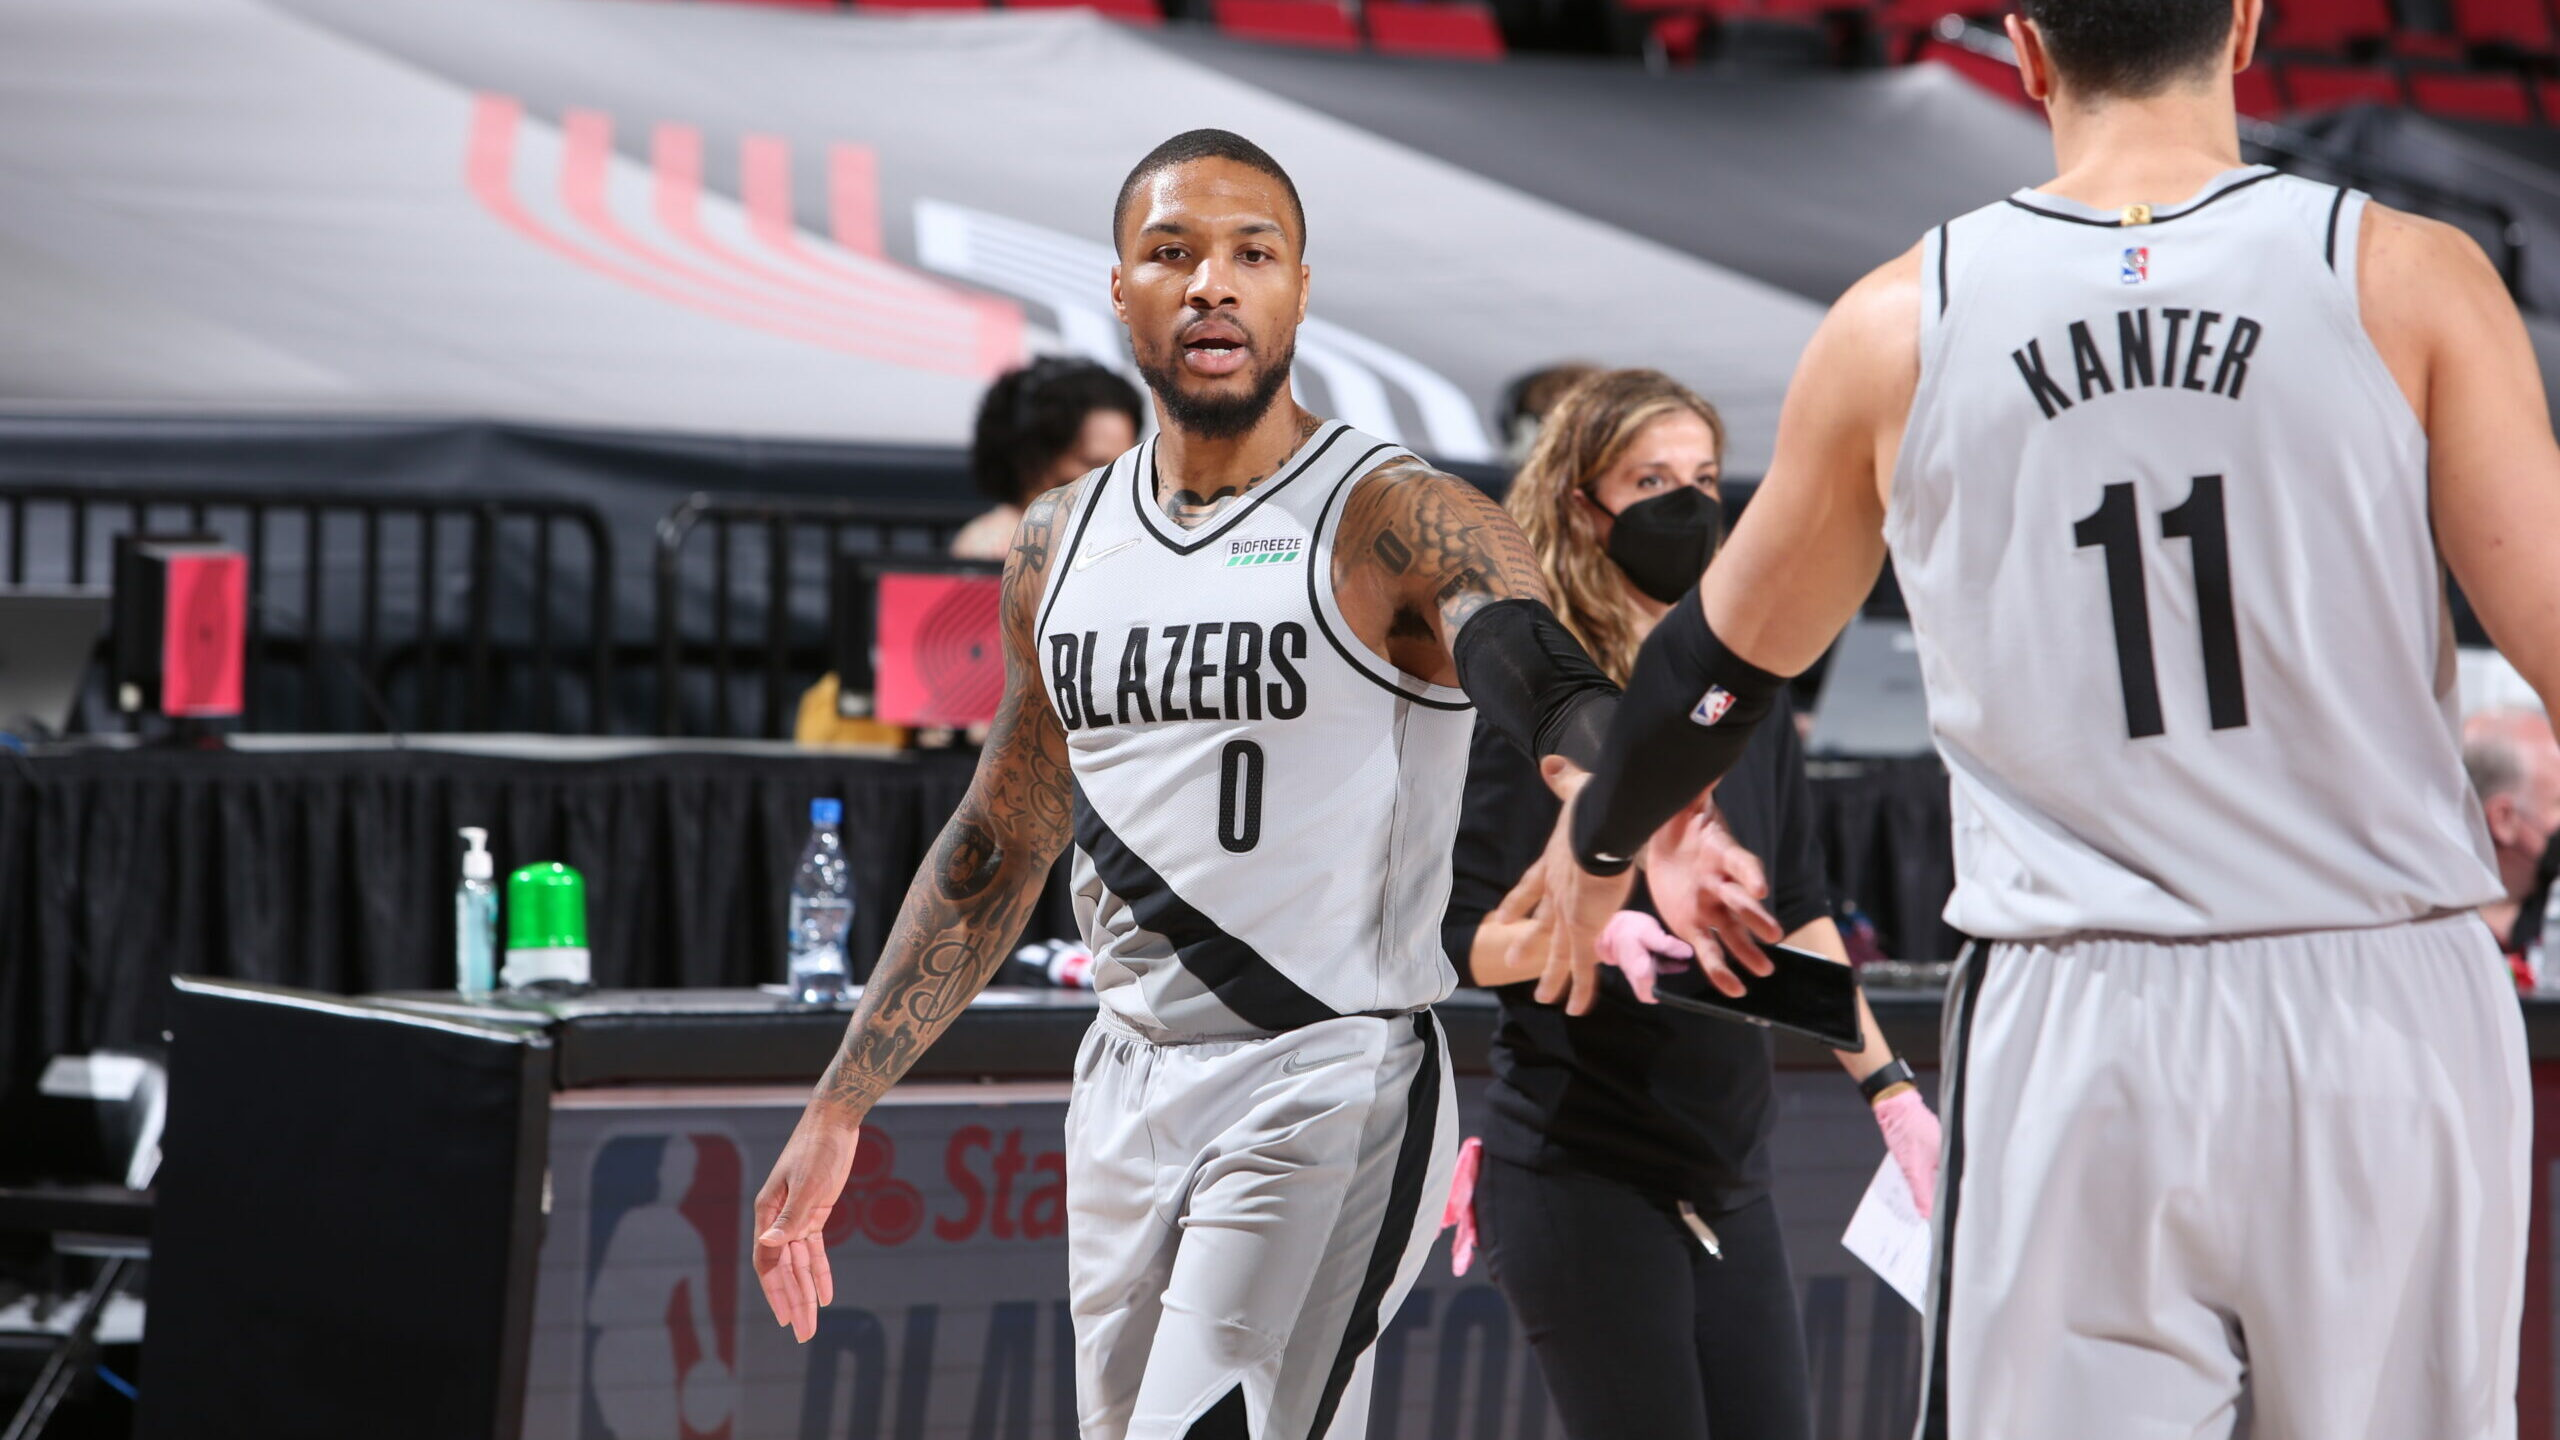 Blazers look to build on lead over Lakers for 6th